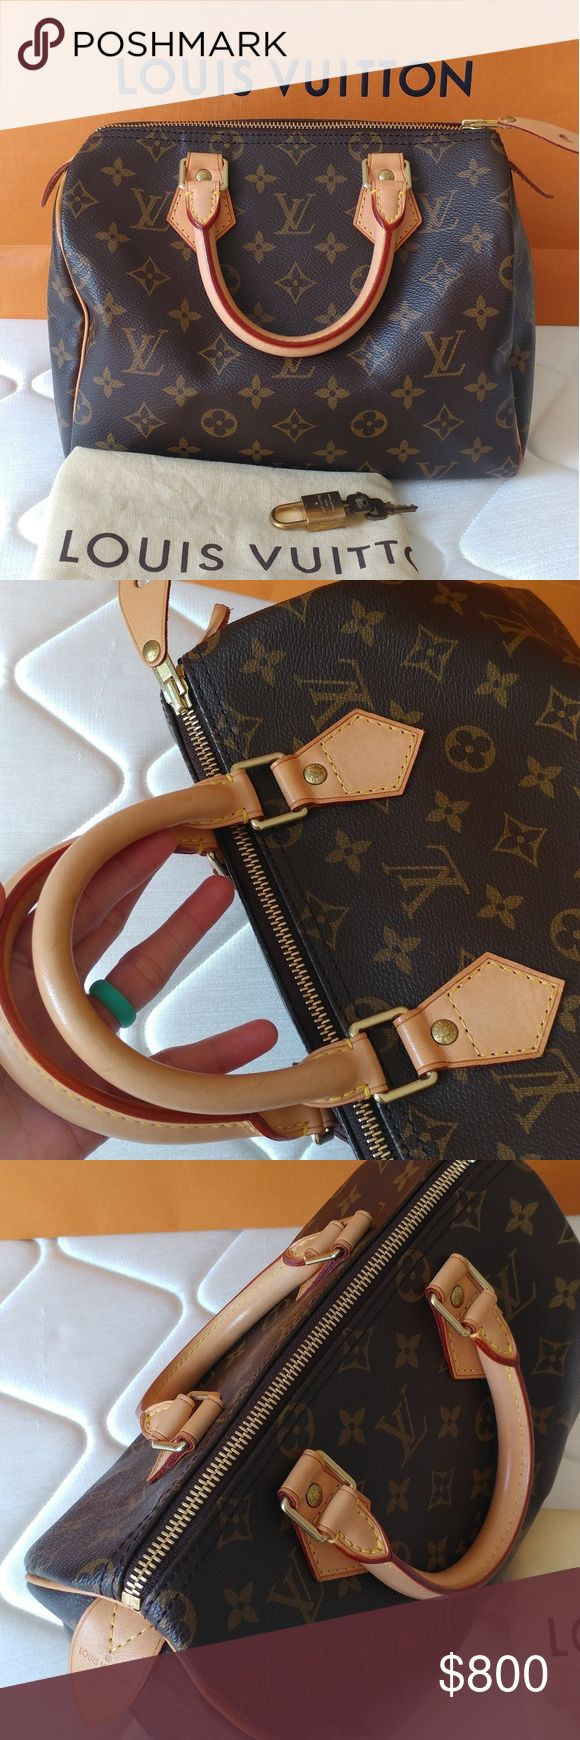 Louis Vuitton Speedy 25 Authentic Louis Vuitton speedy 25 in monogram Excellent condition Comes with dustbag and keylock and tags Made in USA Date code: SD0065 No smell Light patina  No trade Accept 🅿️ or Circle or squarecash Louis Vuitton Bags Satchels